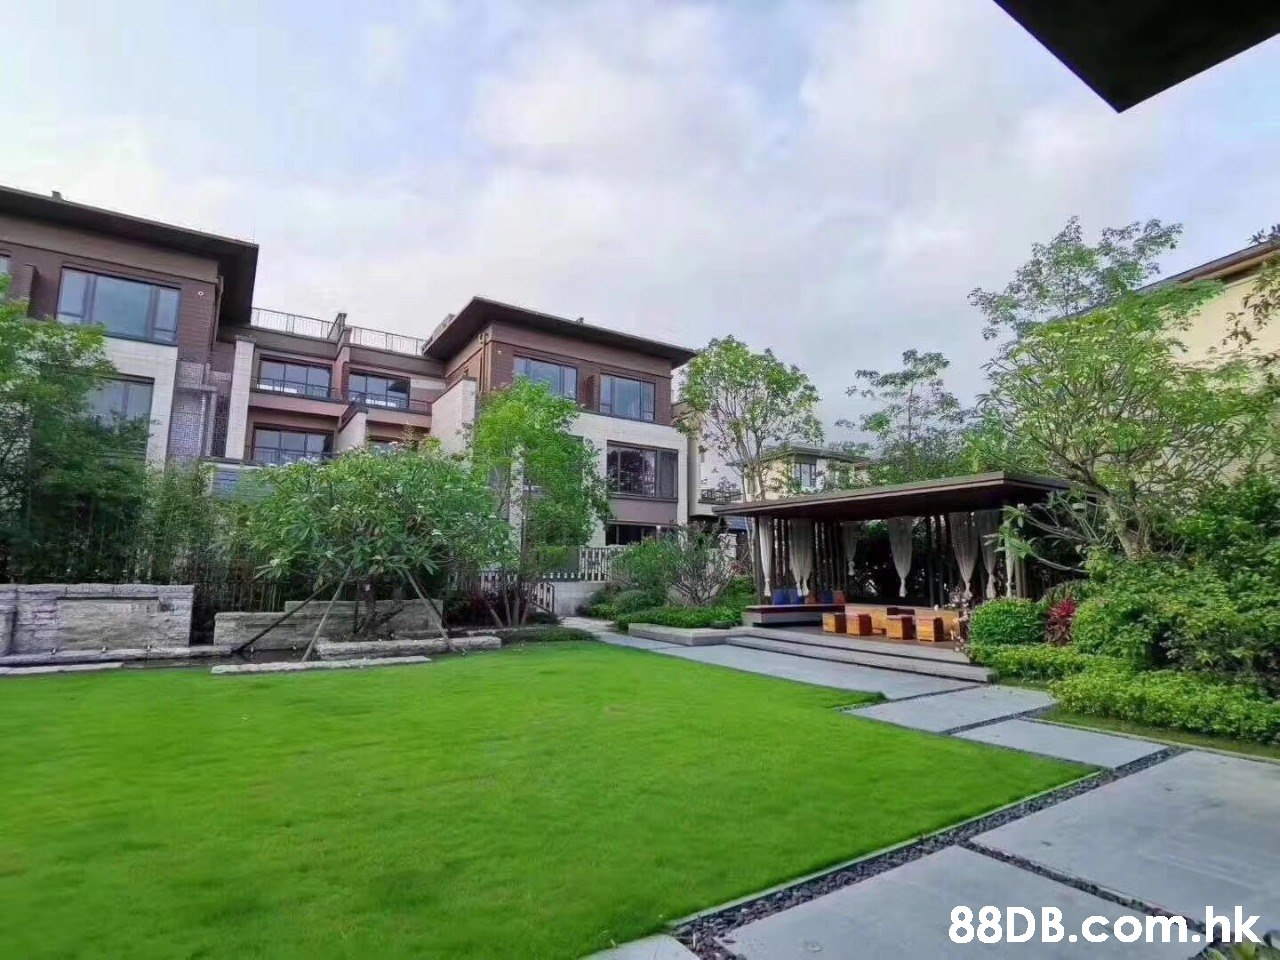 .hk  Property,Building,House,Residential area,Home